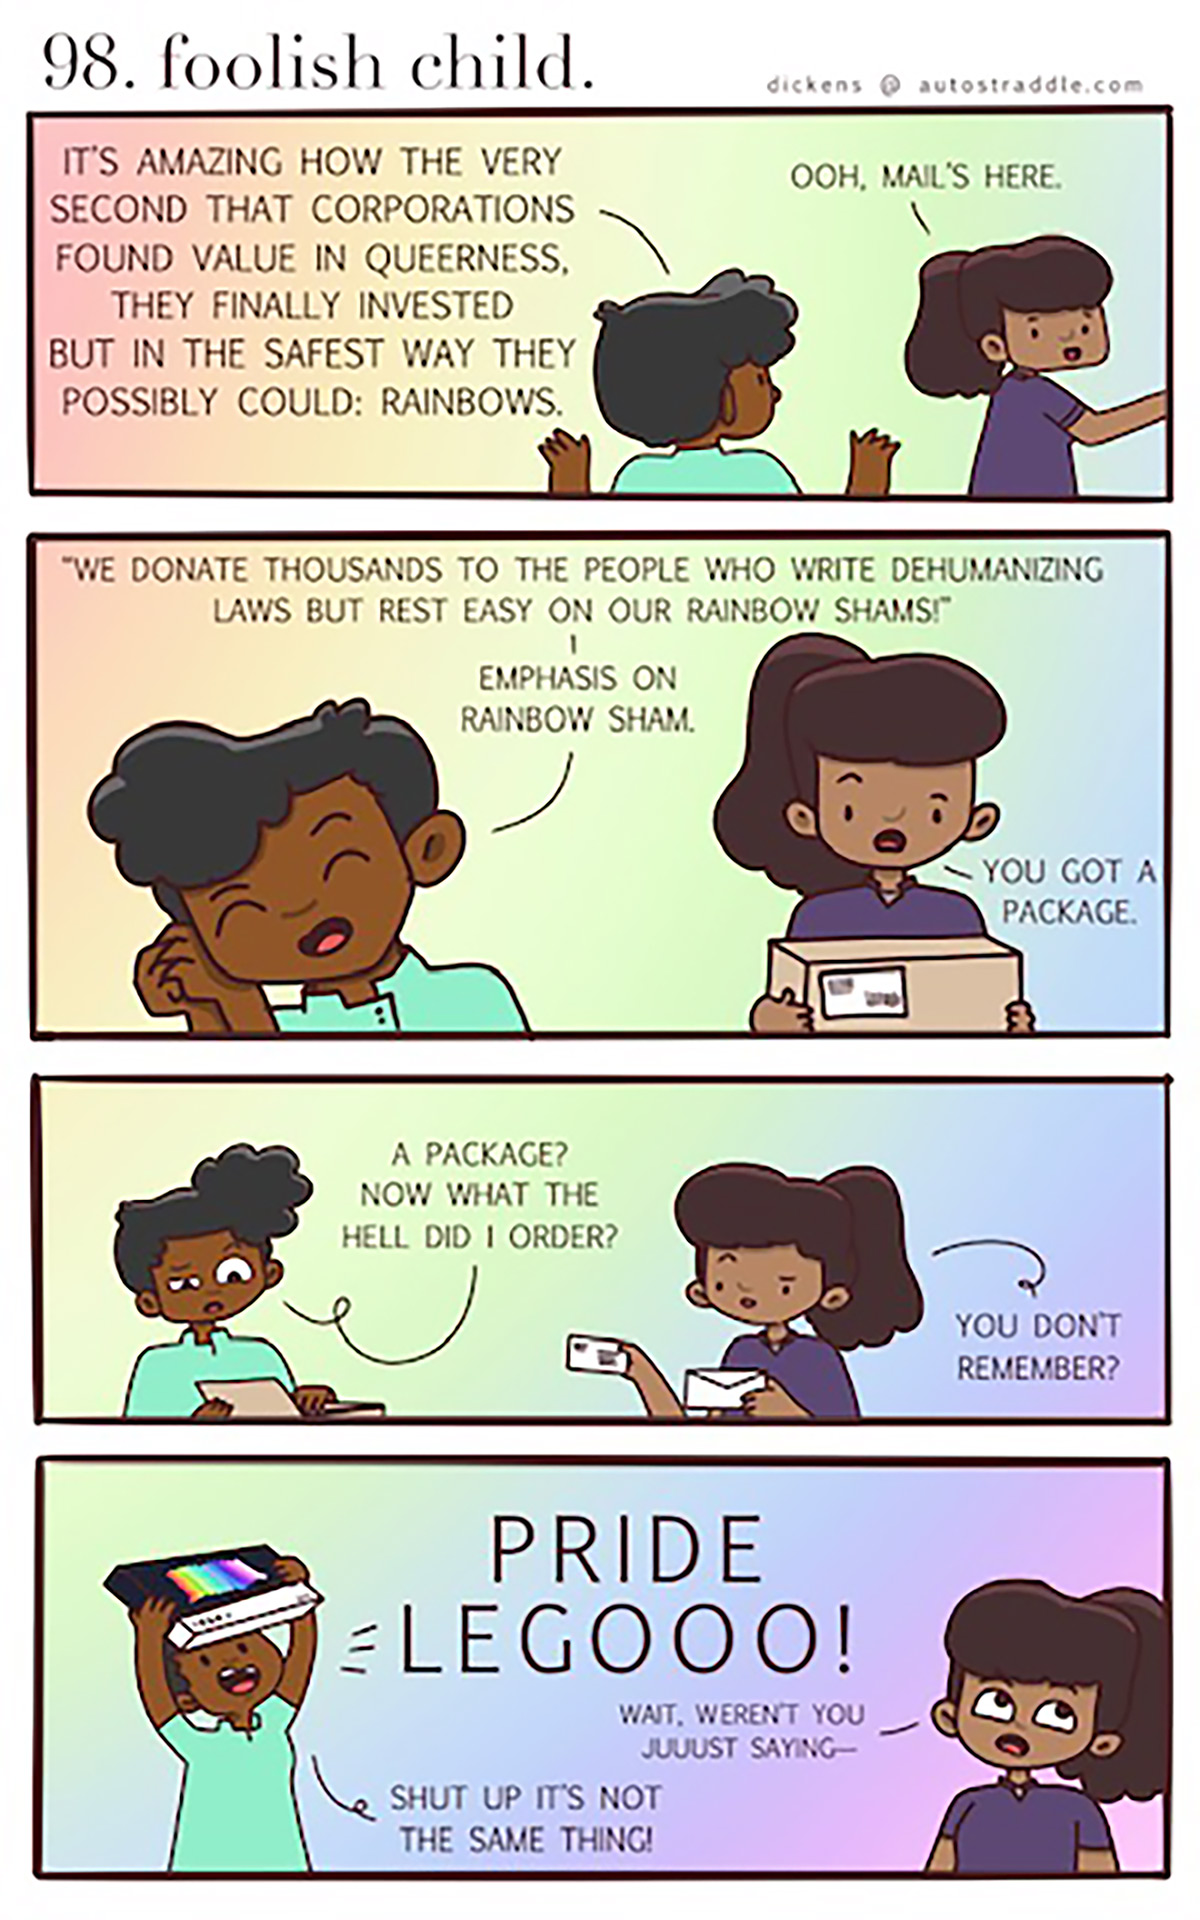 In a four panel comic of multi-color background, Dickens is complaining about Corporate Pride... that is until their new Pride Lego set comes in! Then all bets are off!